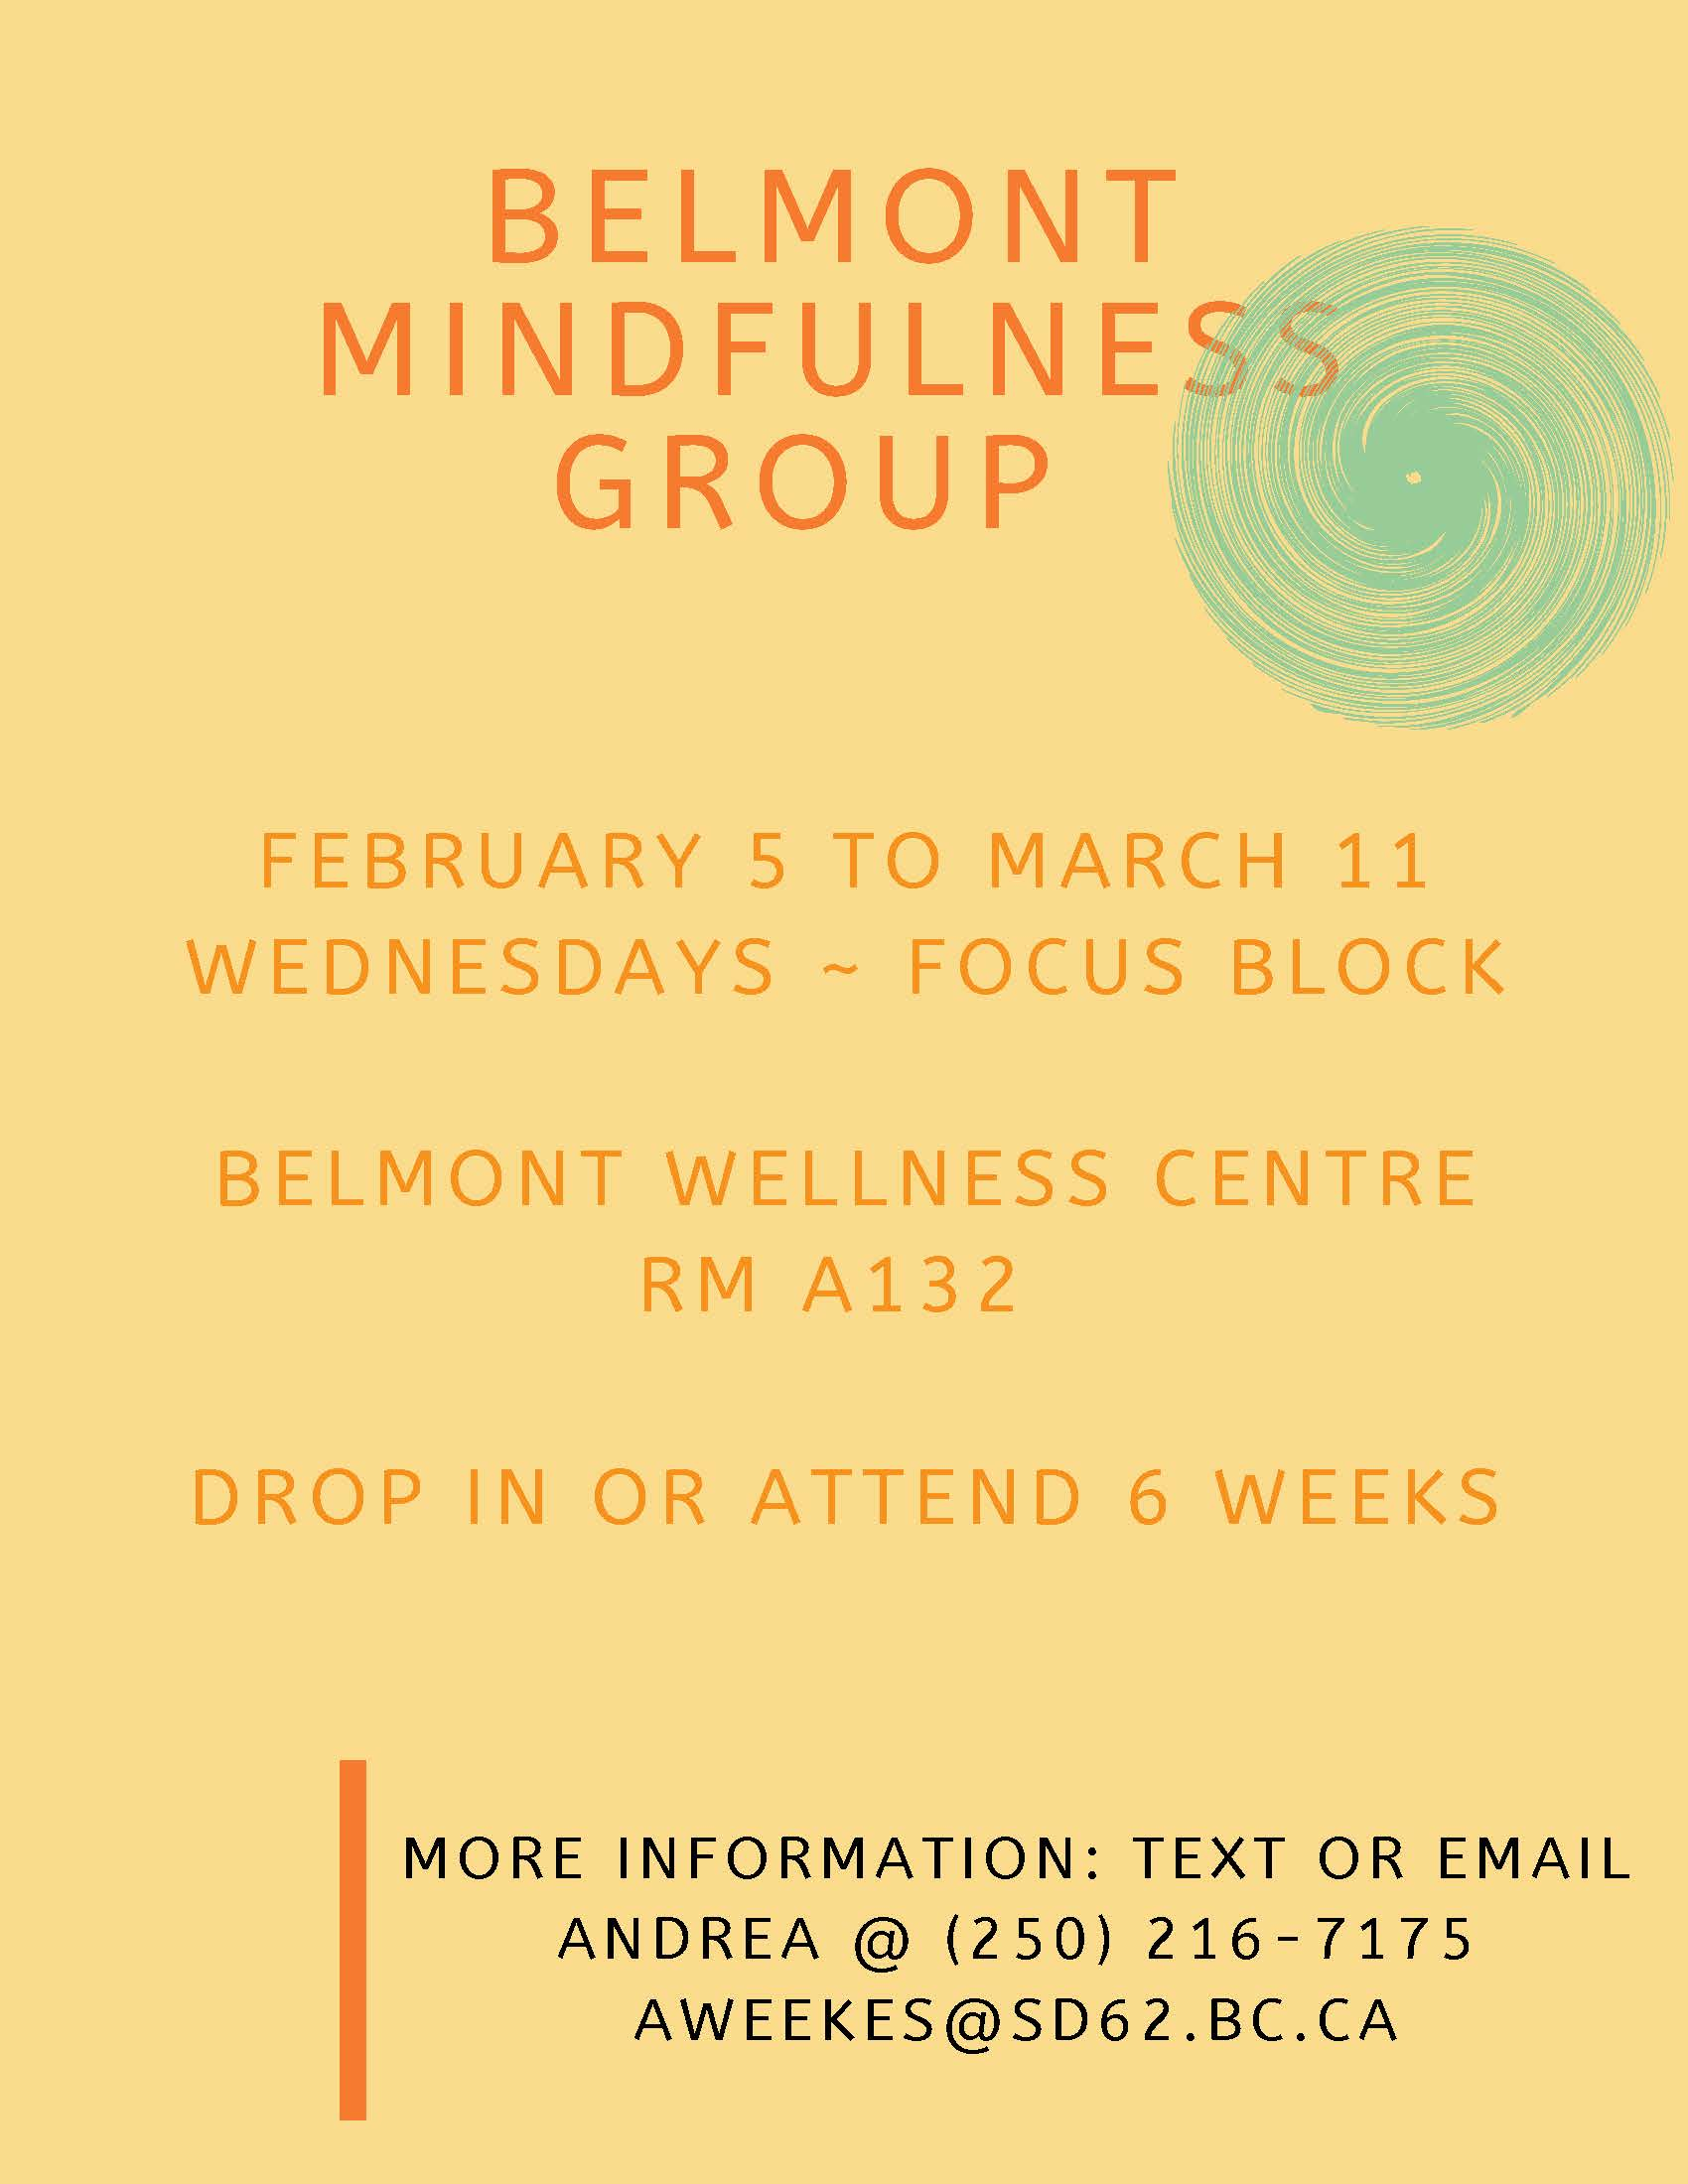 Belmont Mindfulness Group Feb 5- March 11